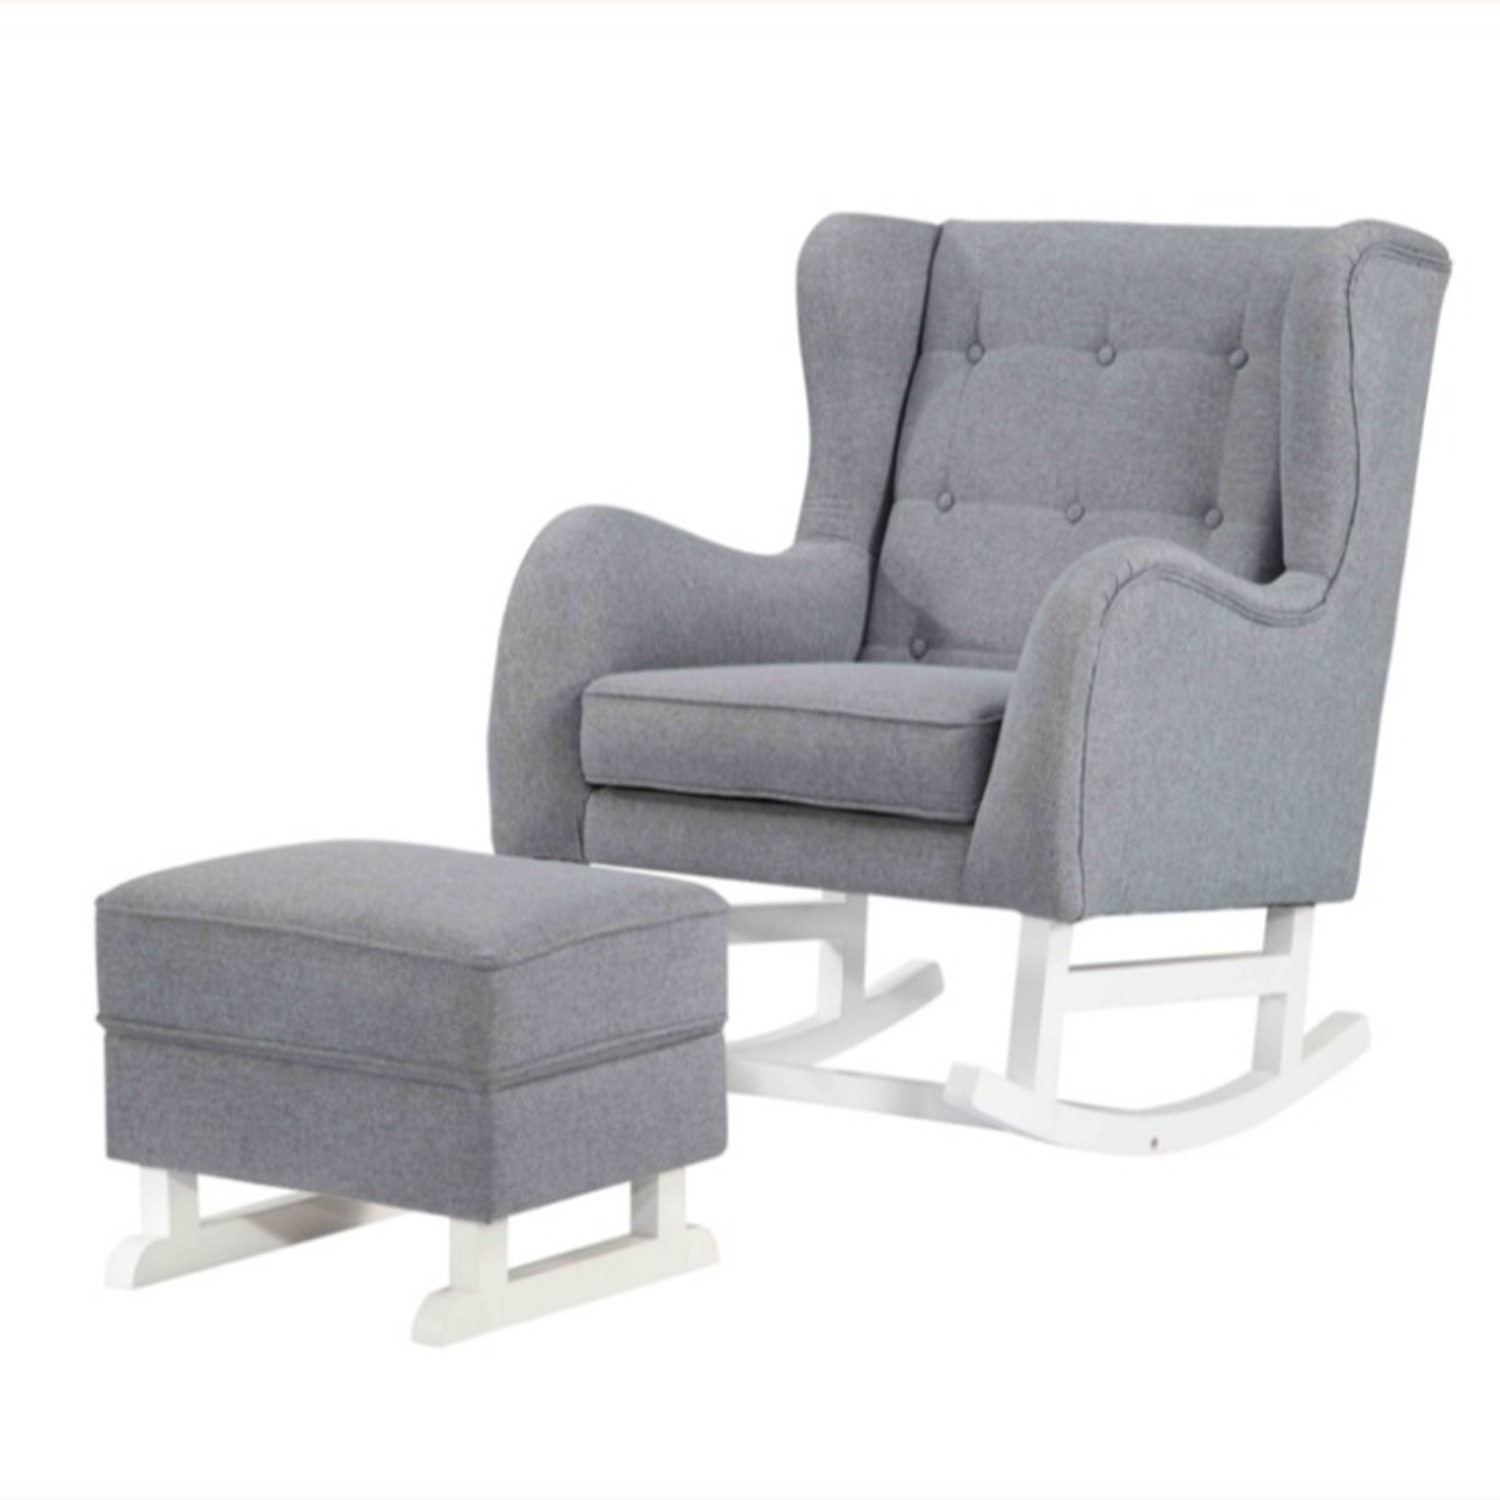 Baby Lounge Chair & Ottoman In Gray Fabric - image-5